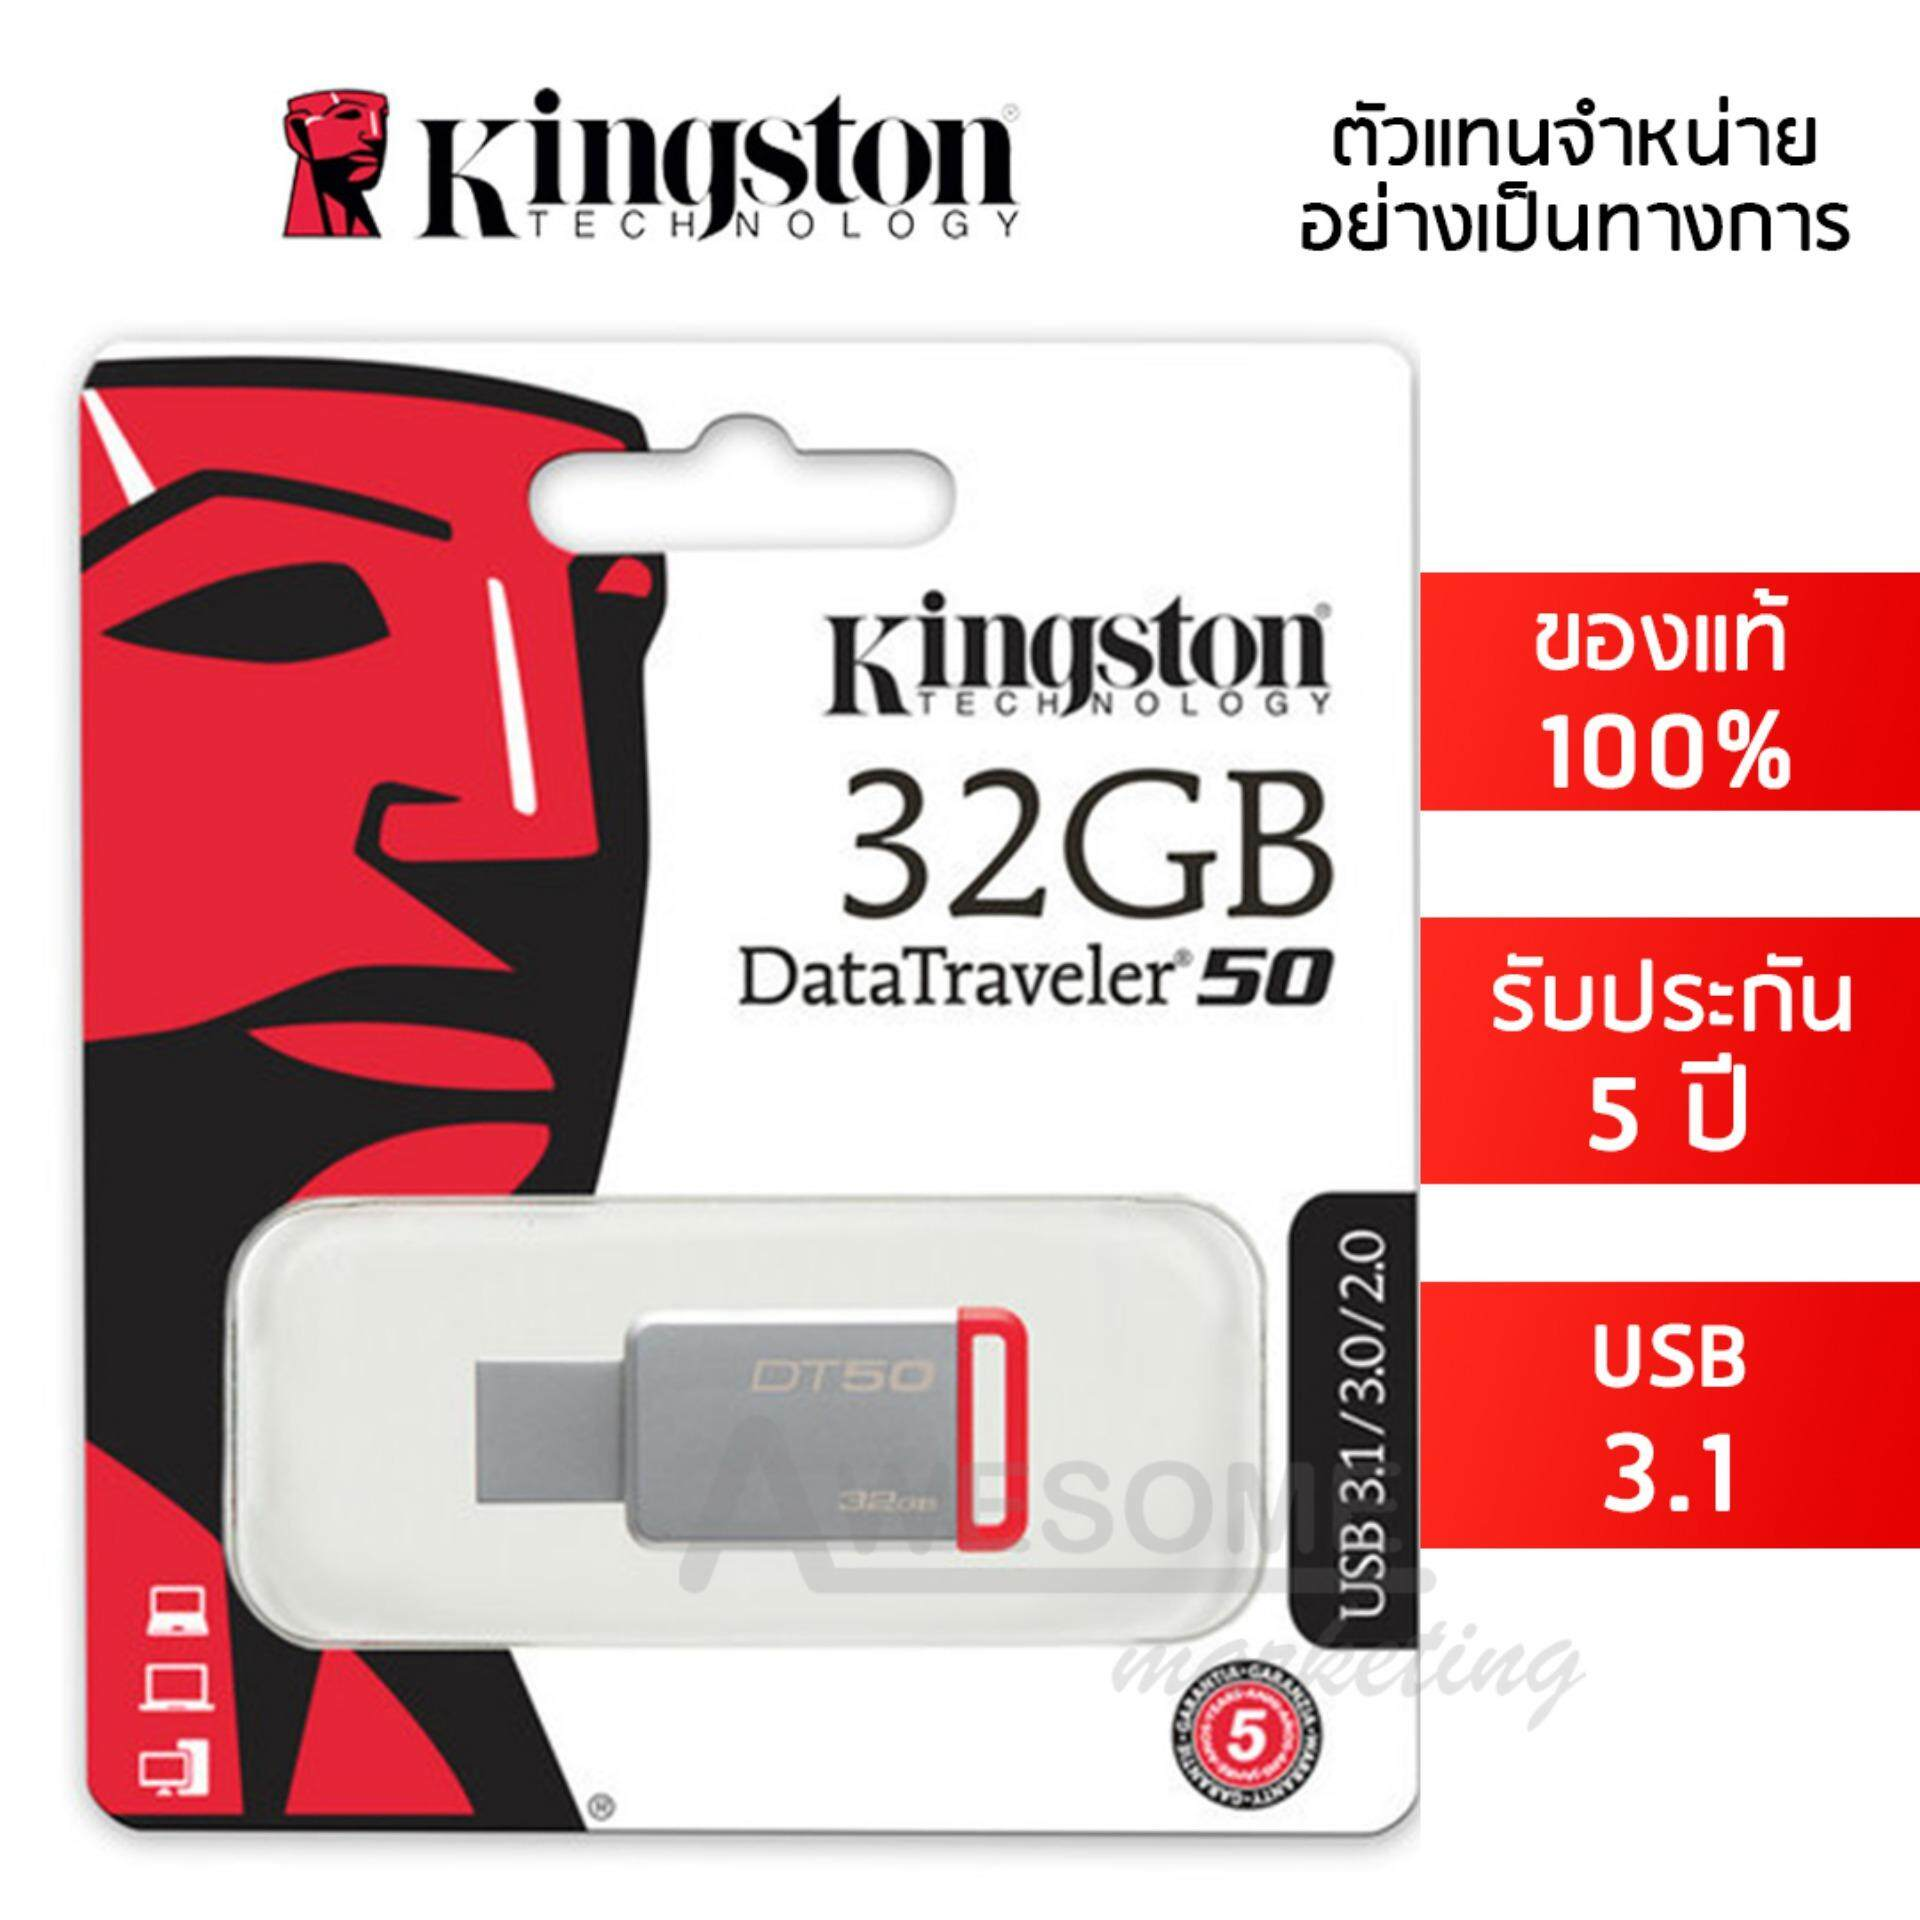 Kingston Datatravel 50 32gb Usb 3.0 Flash Drive (kt027/dt50-32gb) By Kingston Online Store.